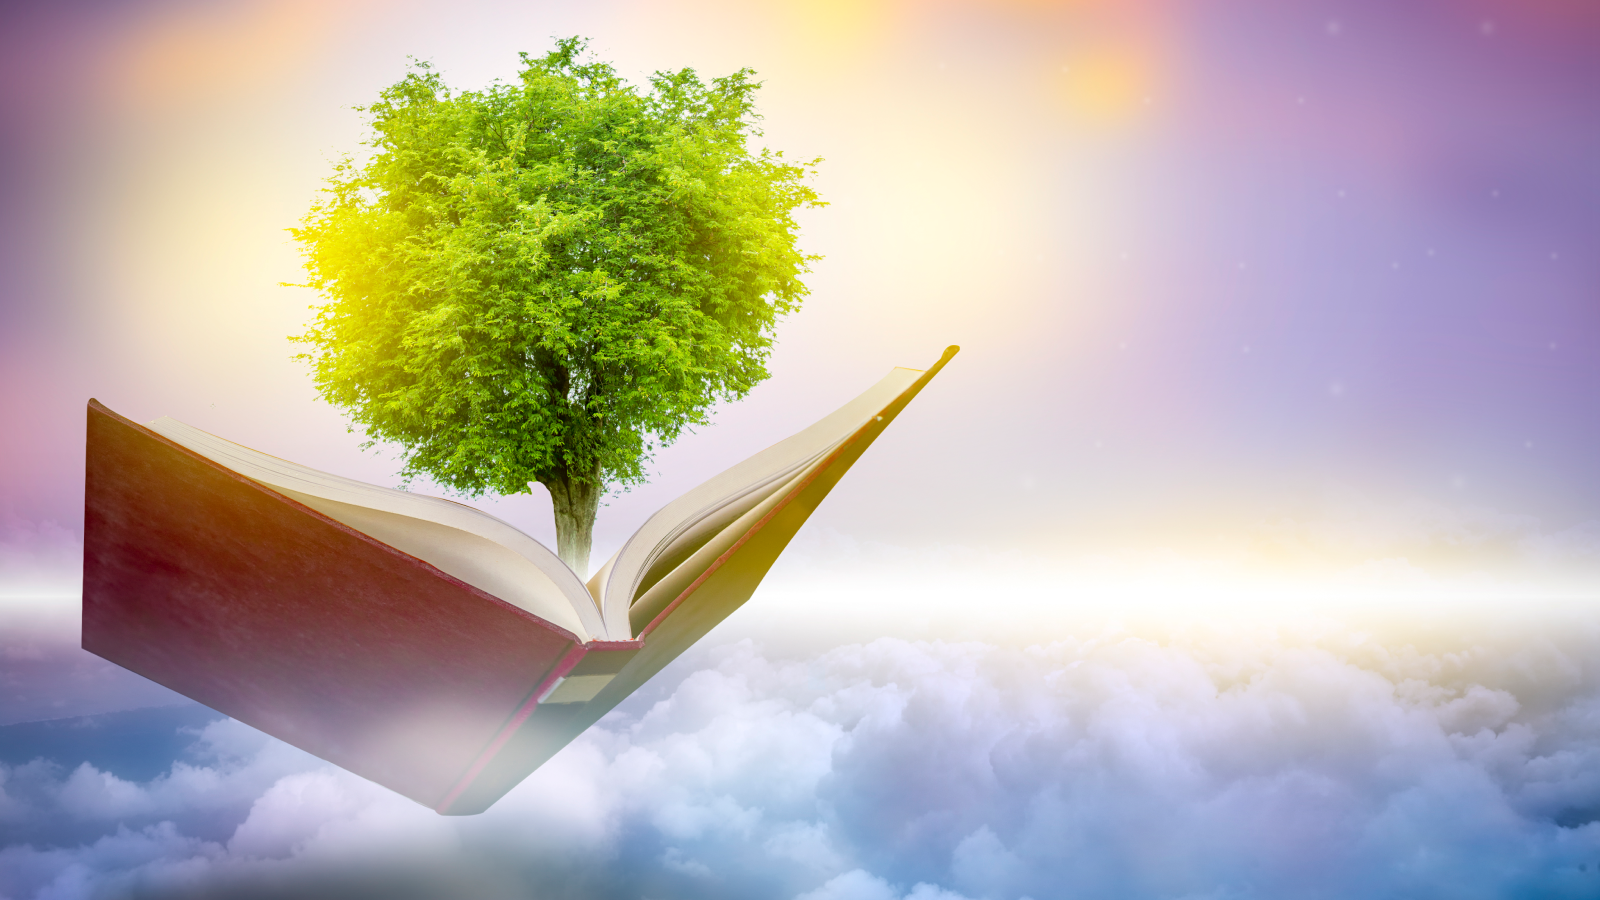 Tree coming out of book over the clouds